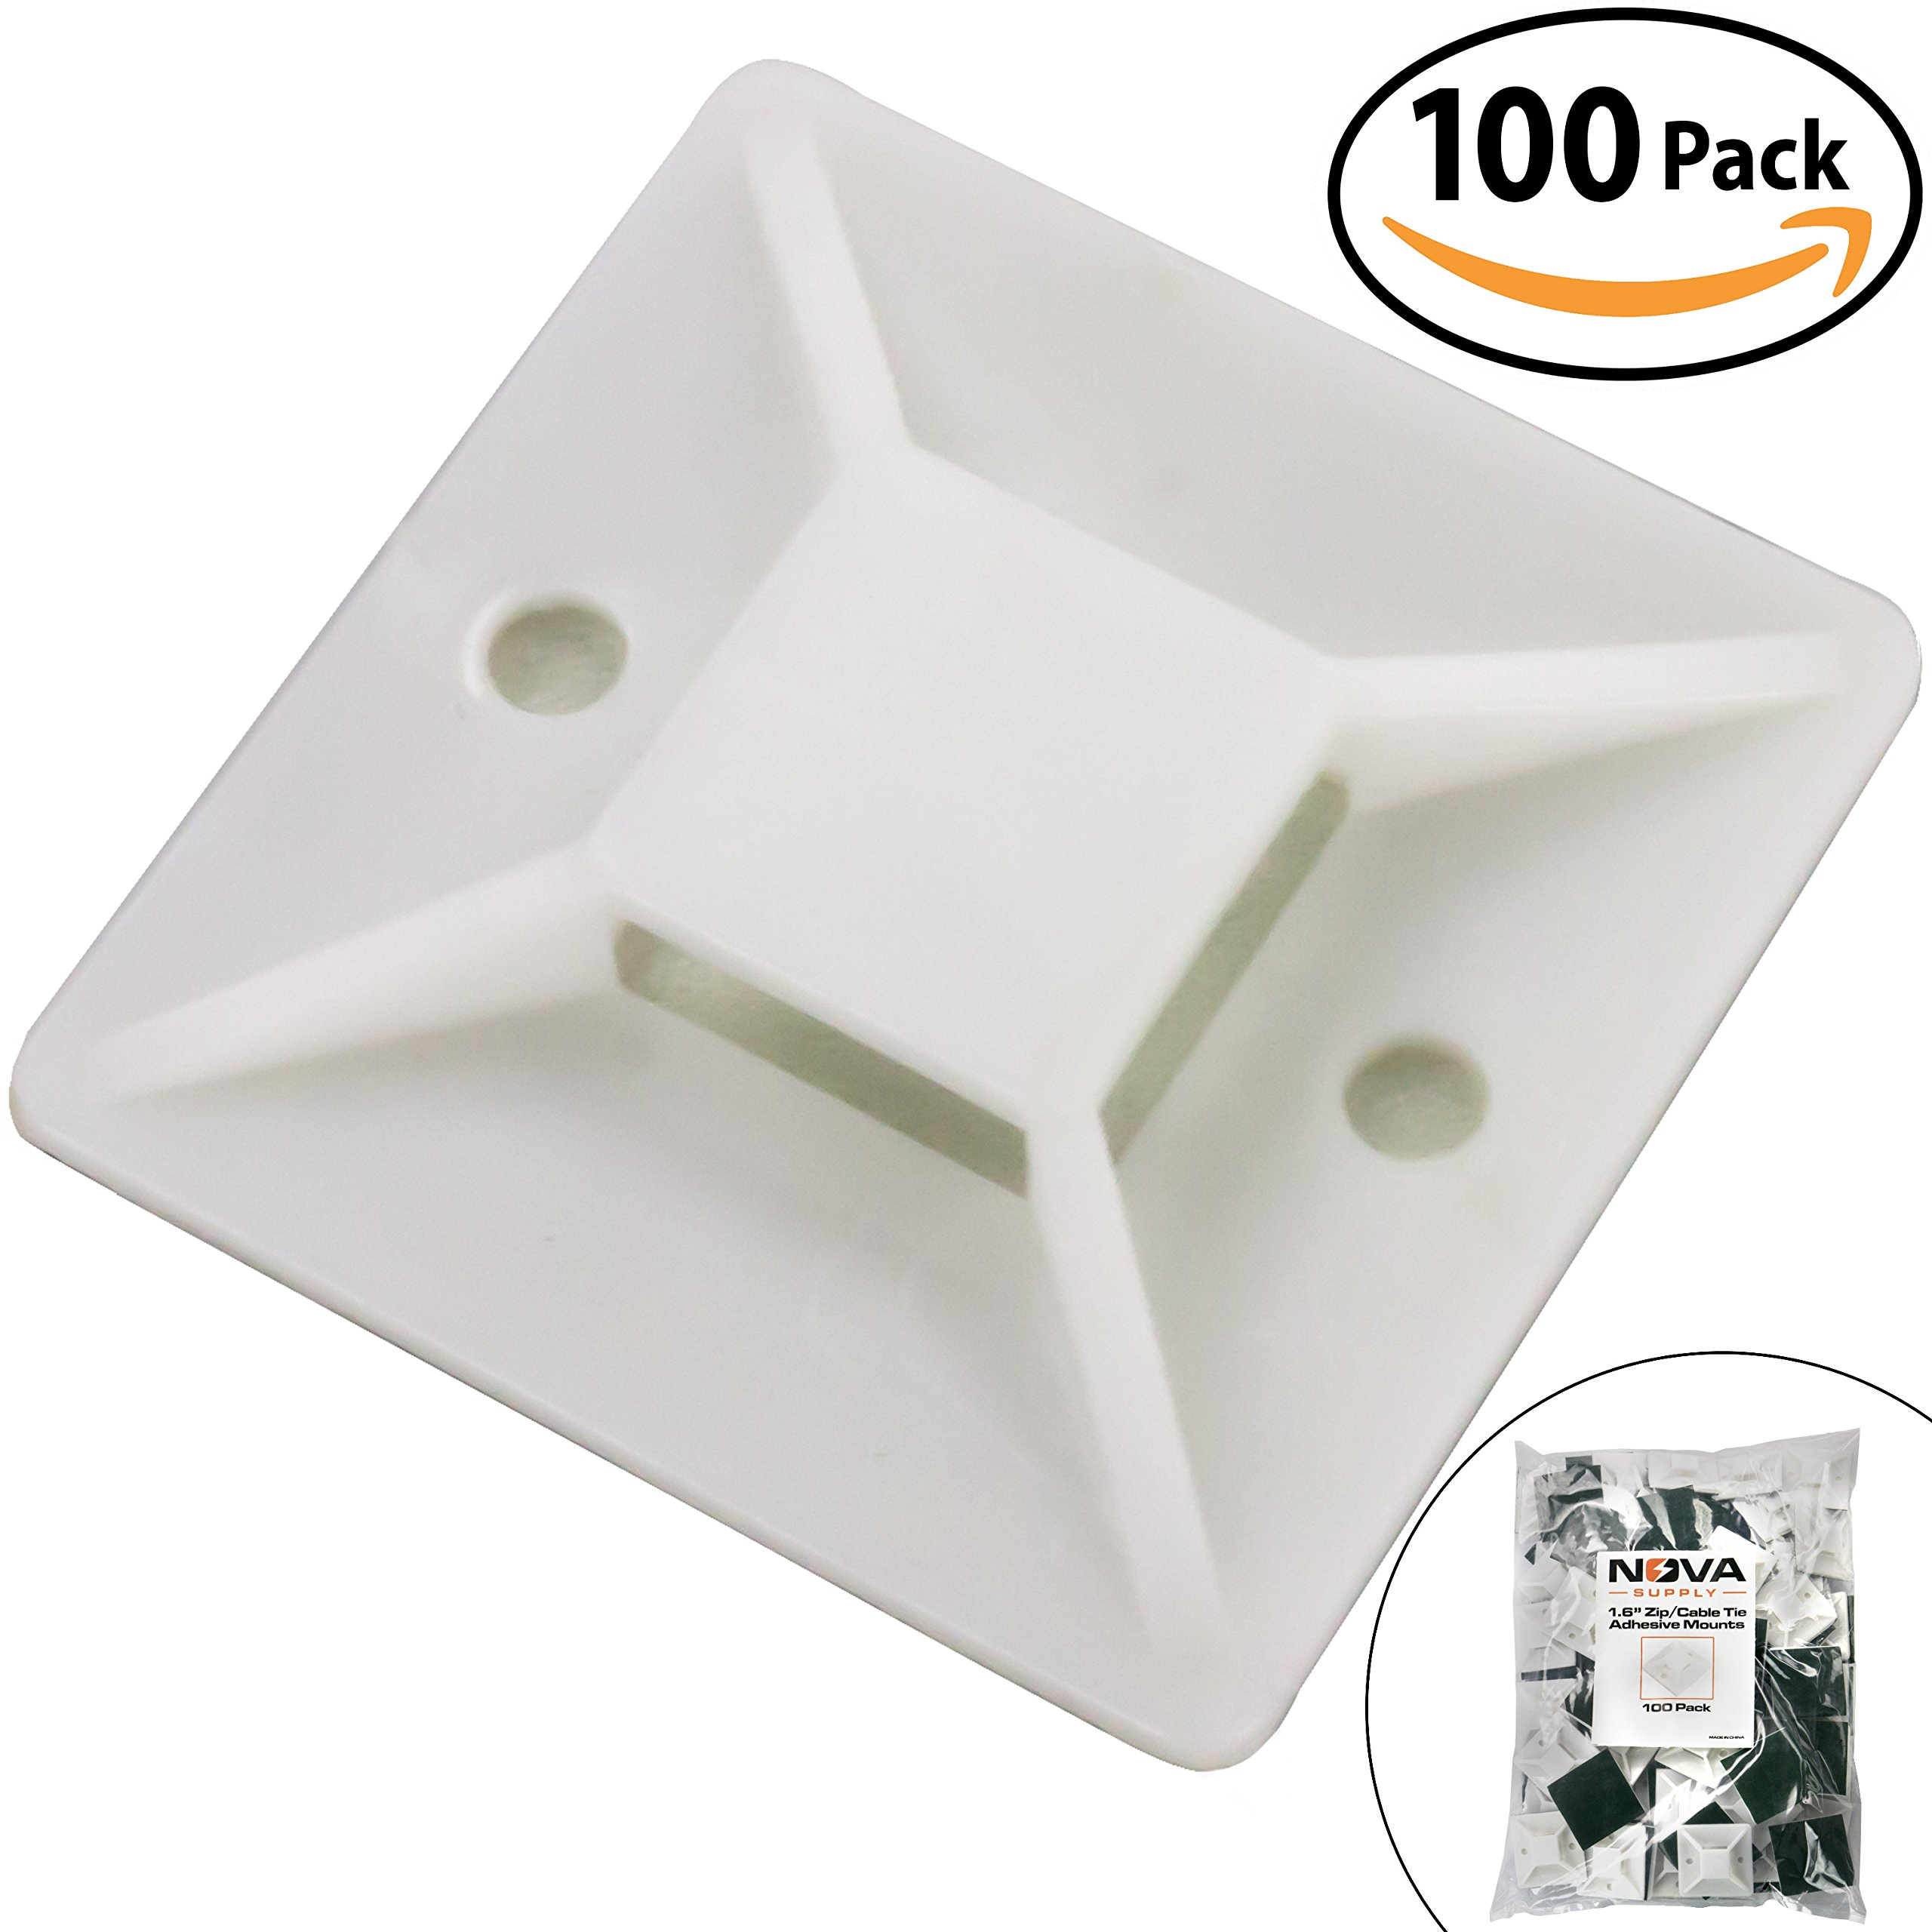 c11c01c592f5 Get Quotations · Super-Adhesive X-Large Cable Tie Mounts 100 Pack For Fast,  Frustration-